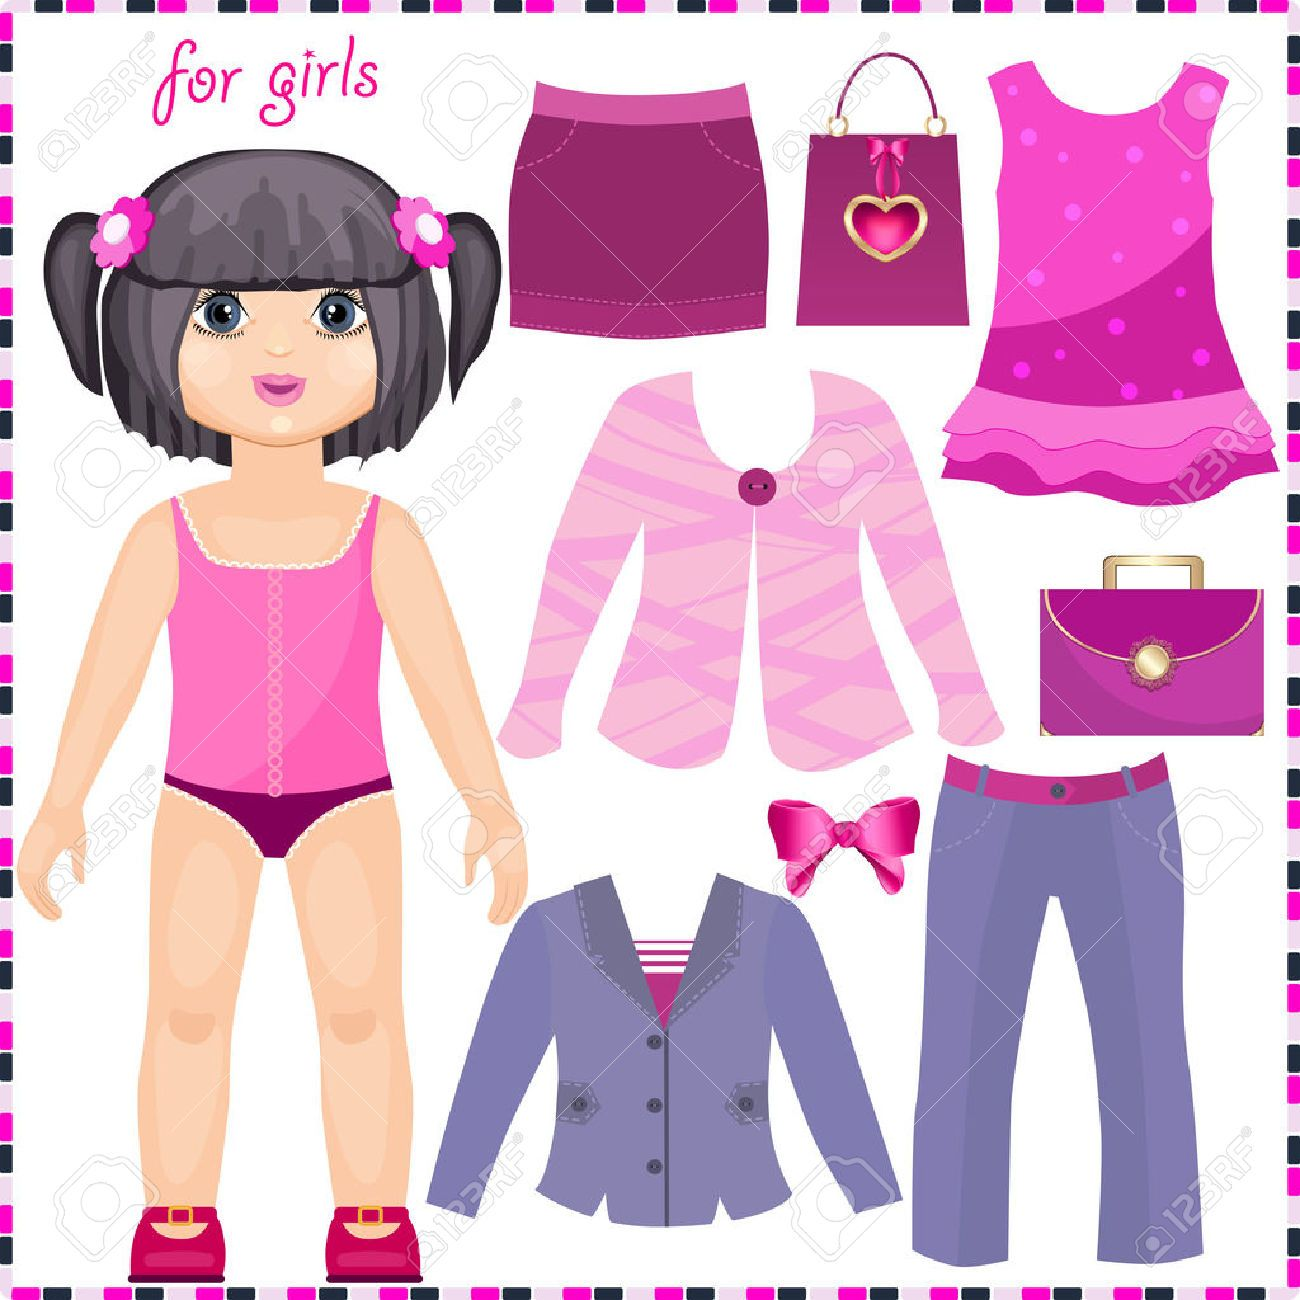 girl paper doll clothes clipart.